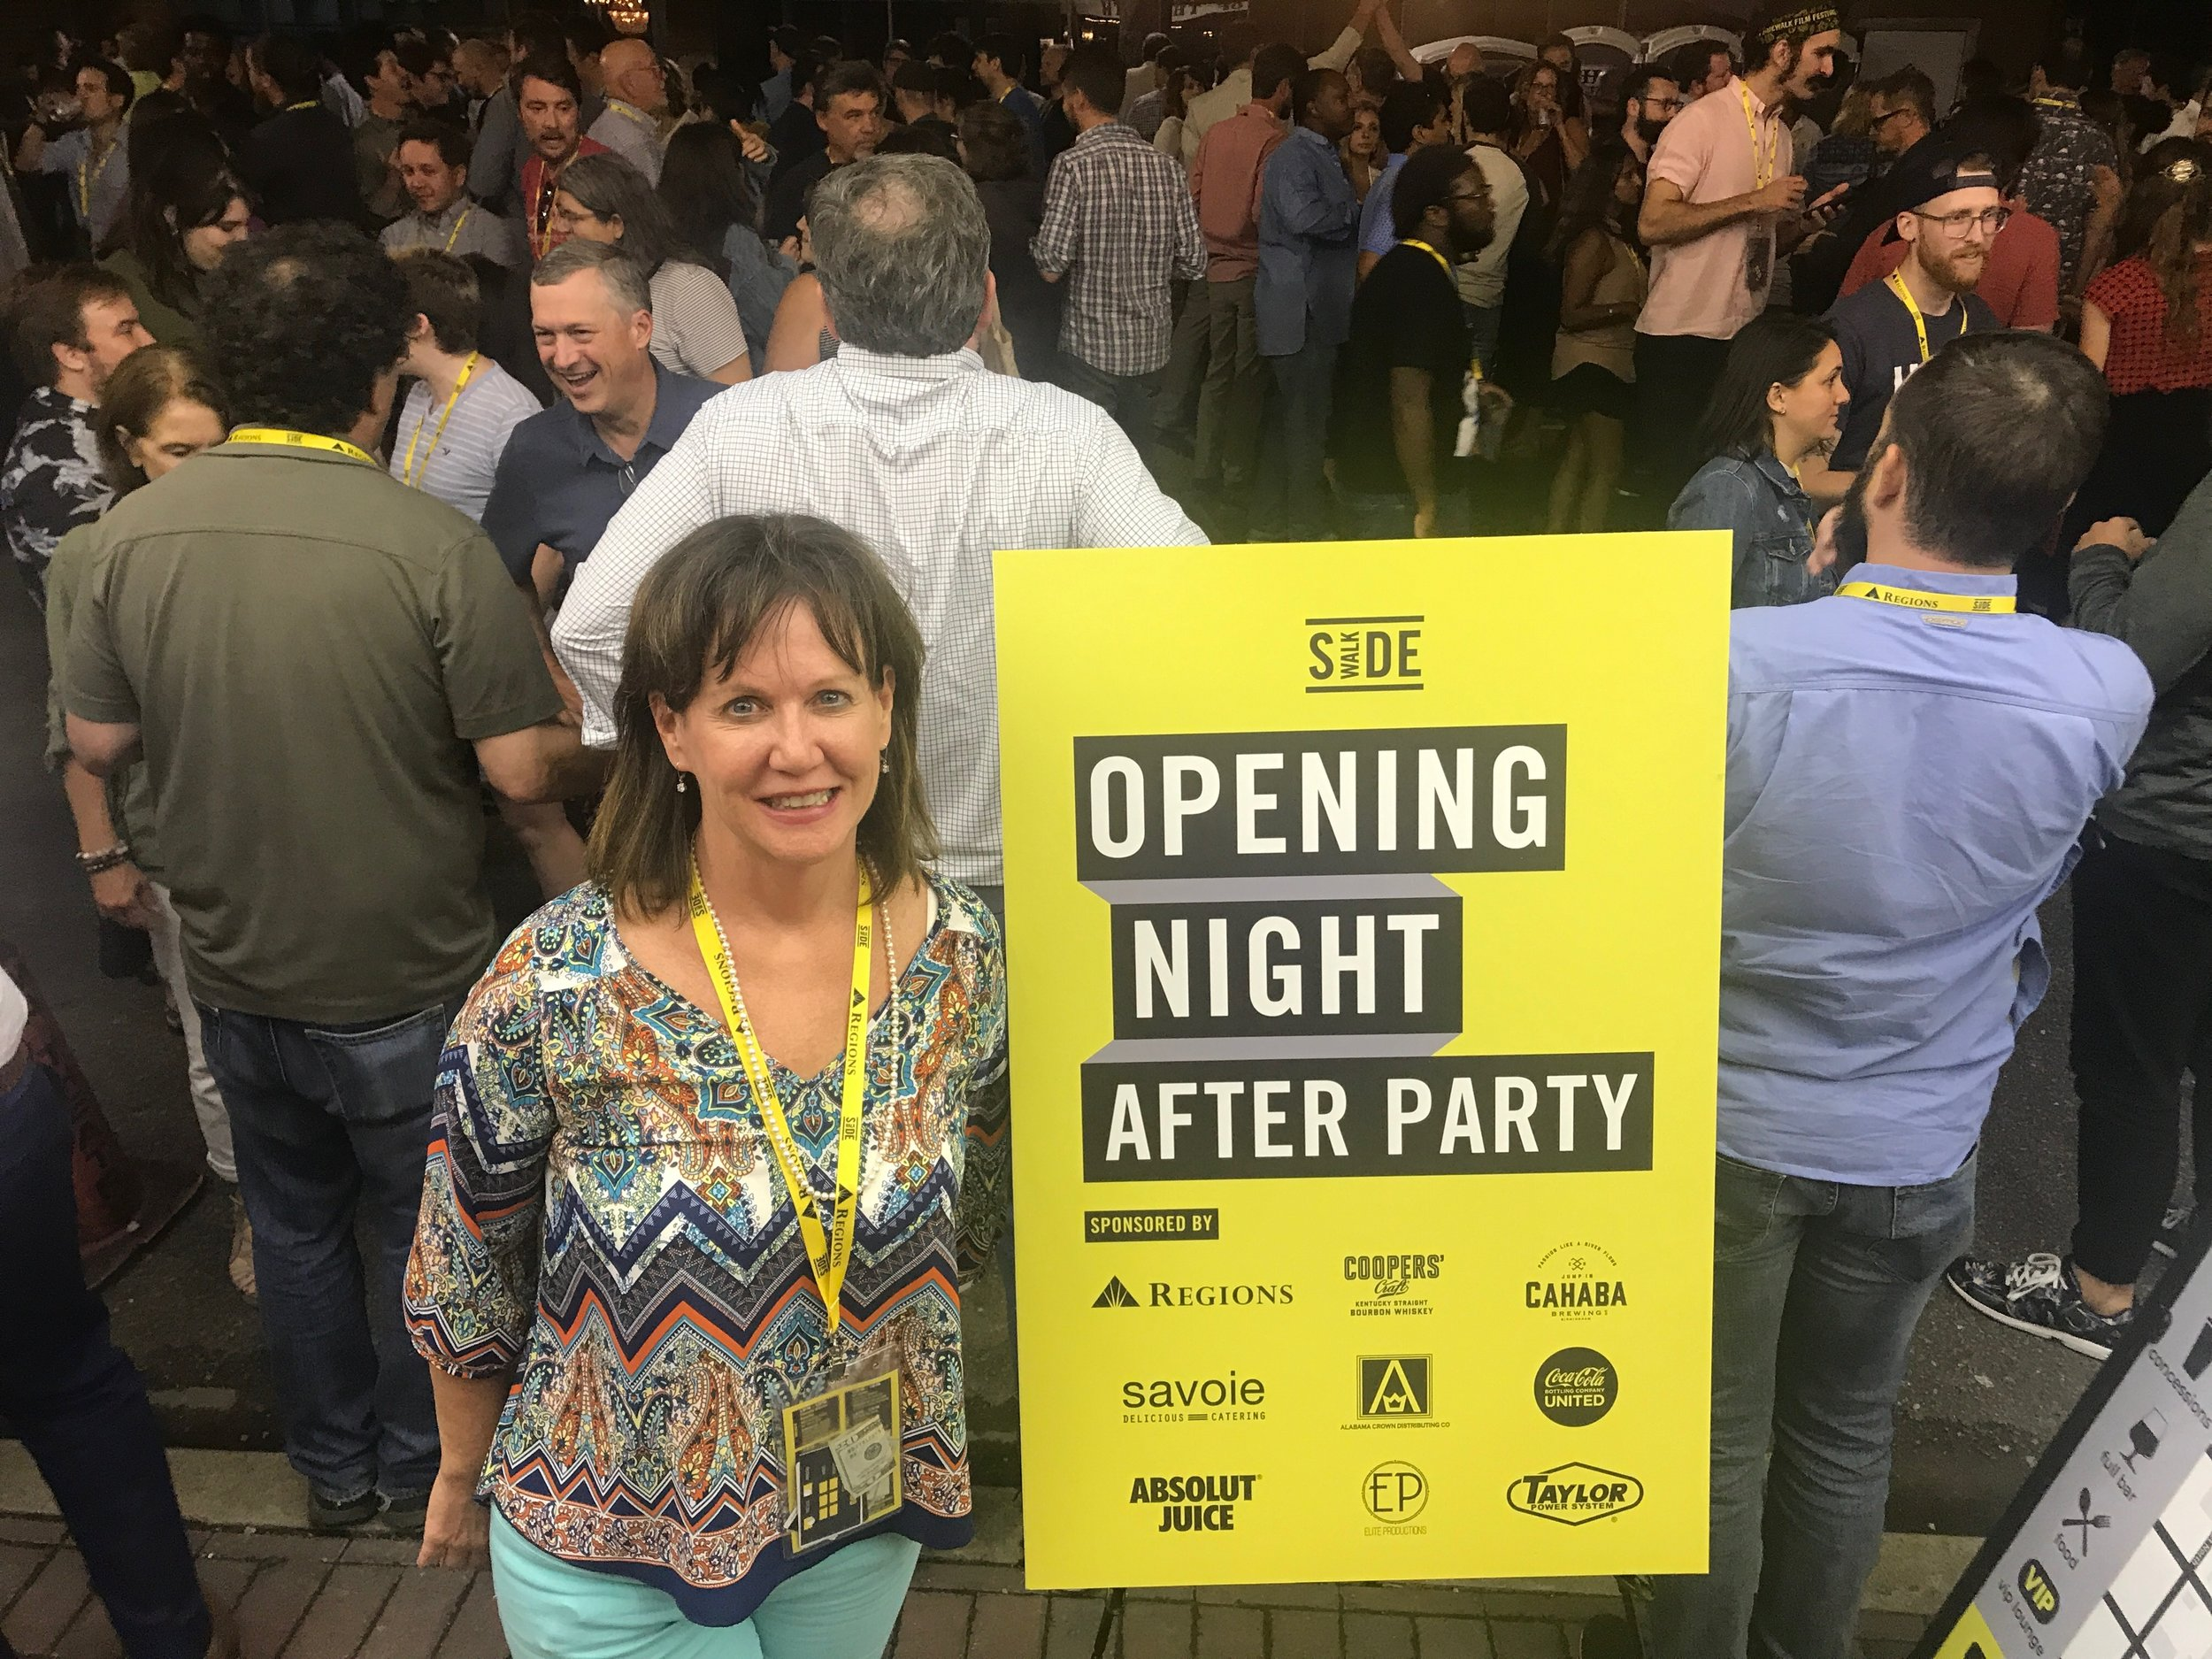 My mom, Kathleen, attending the Opening Night After Party that took up an entire block of downtown Birmingham.